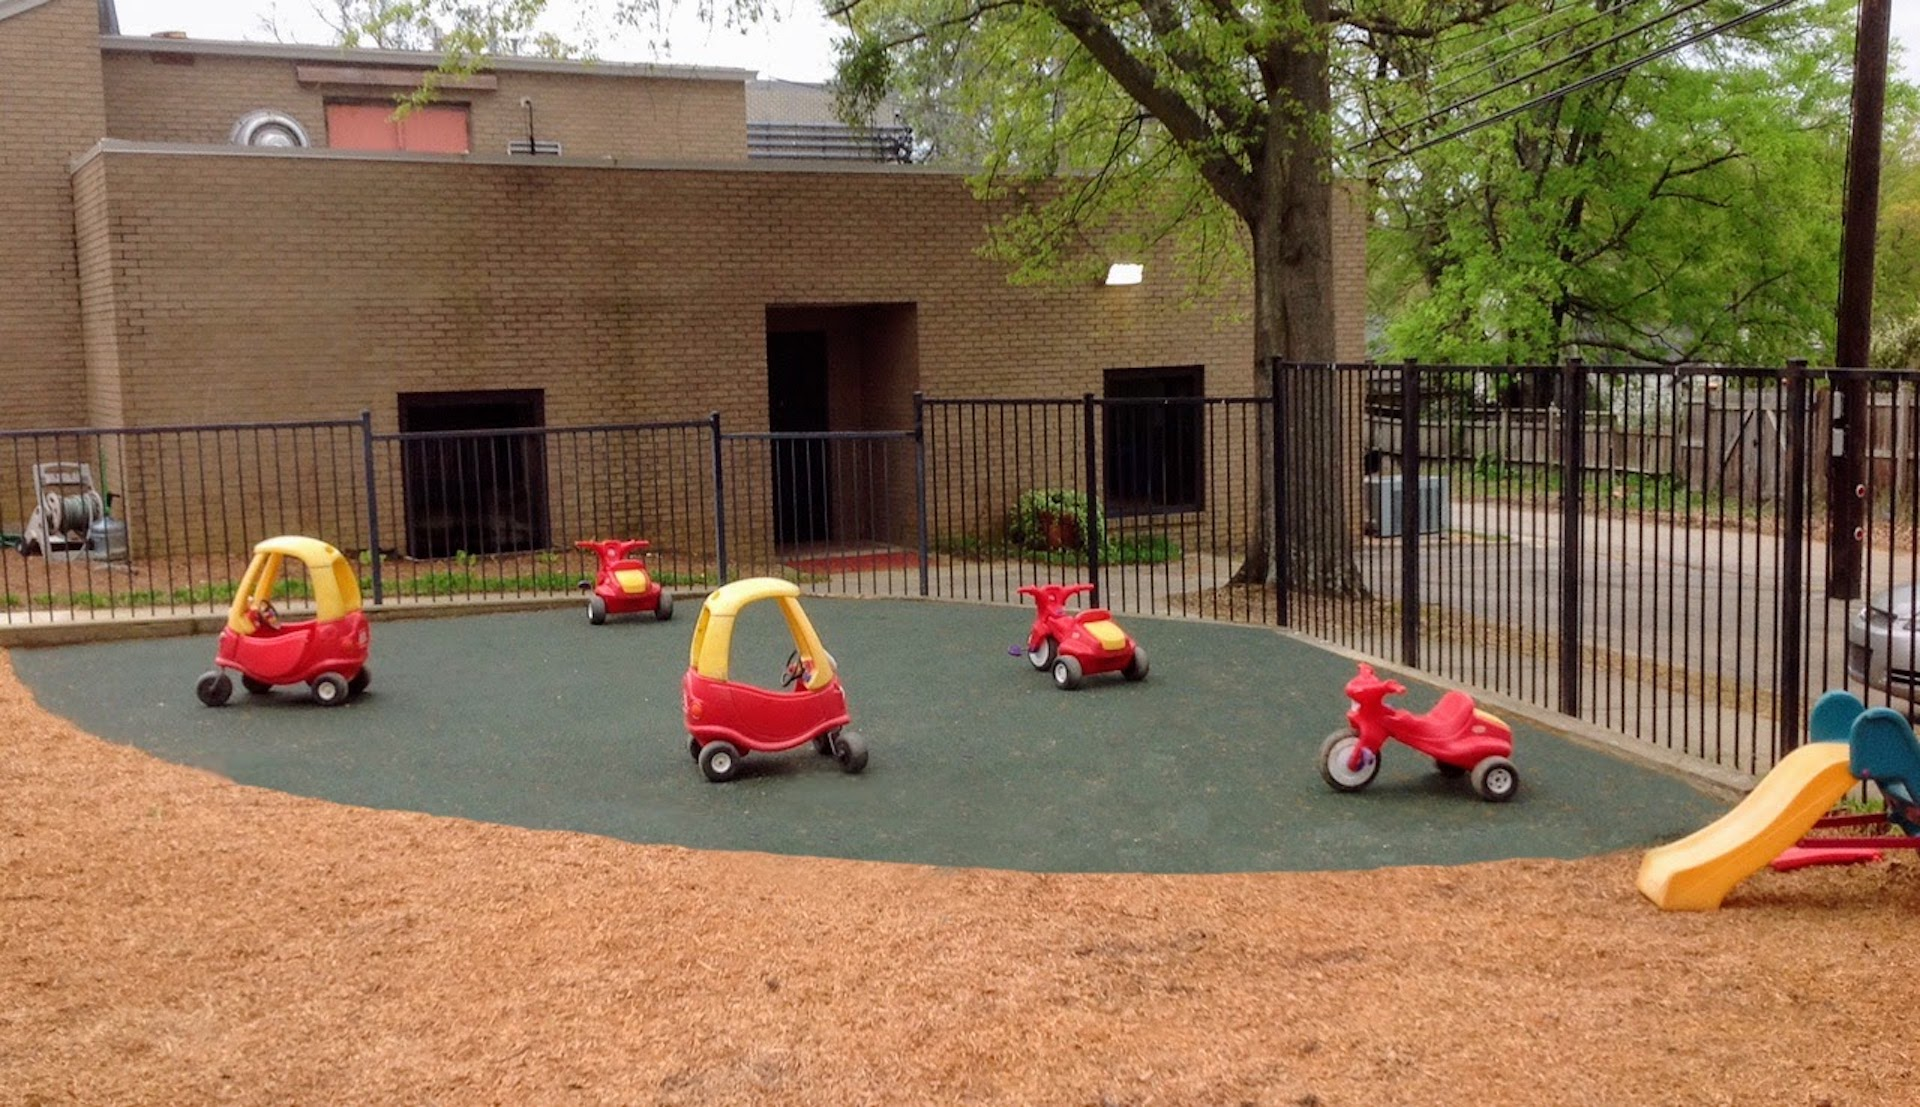 All Saints Church and GameTime Create Play Area for Preschool